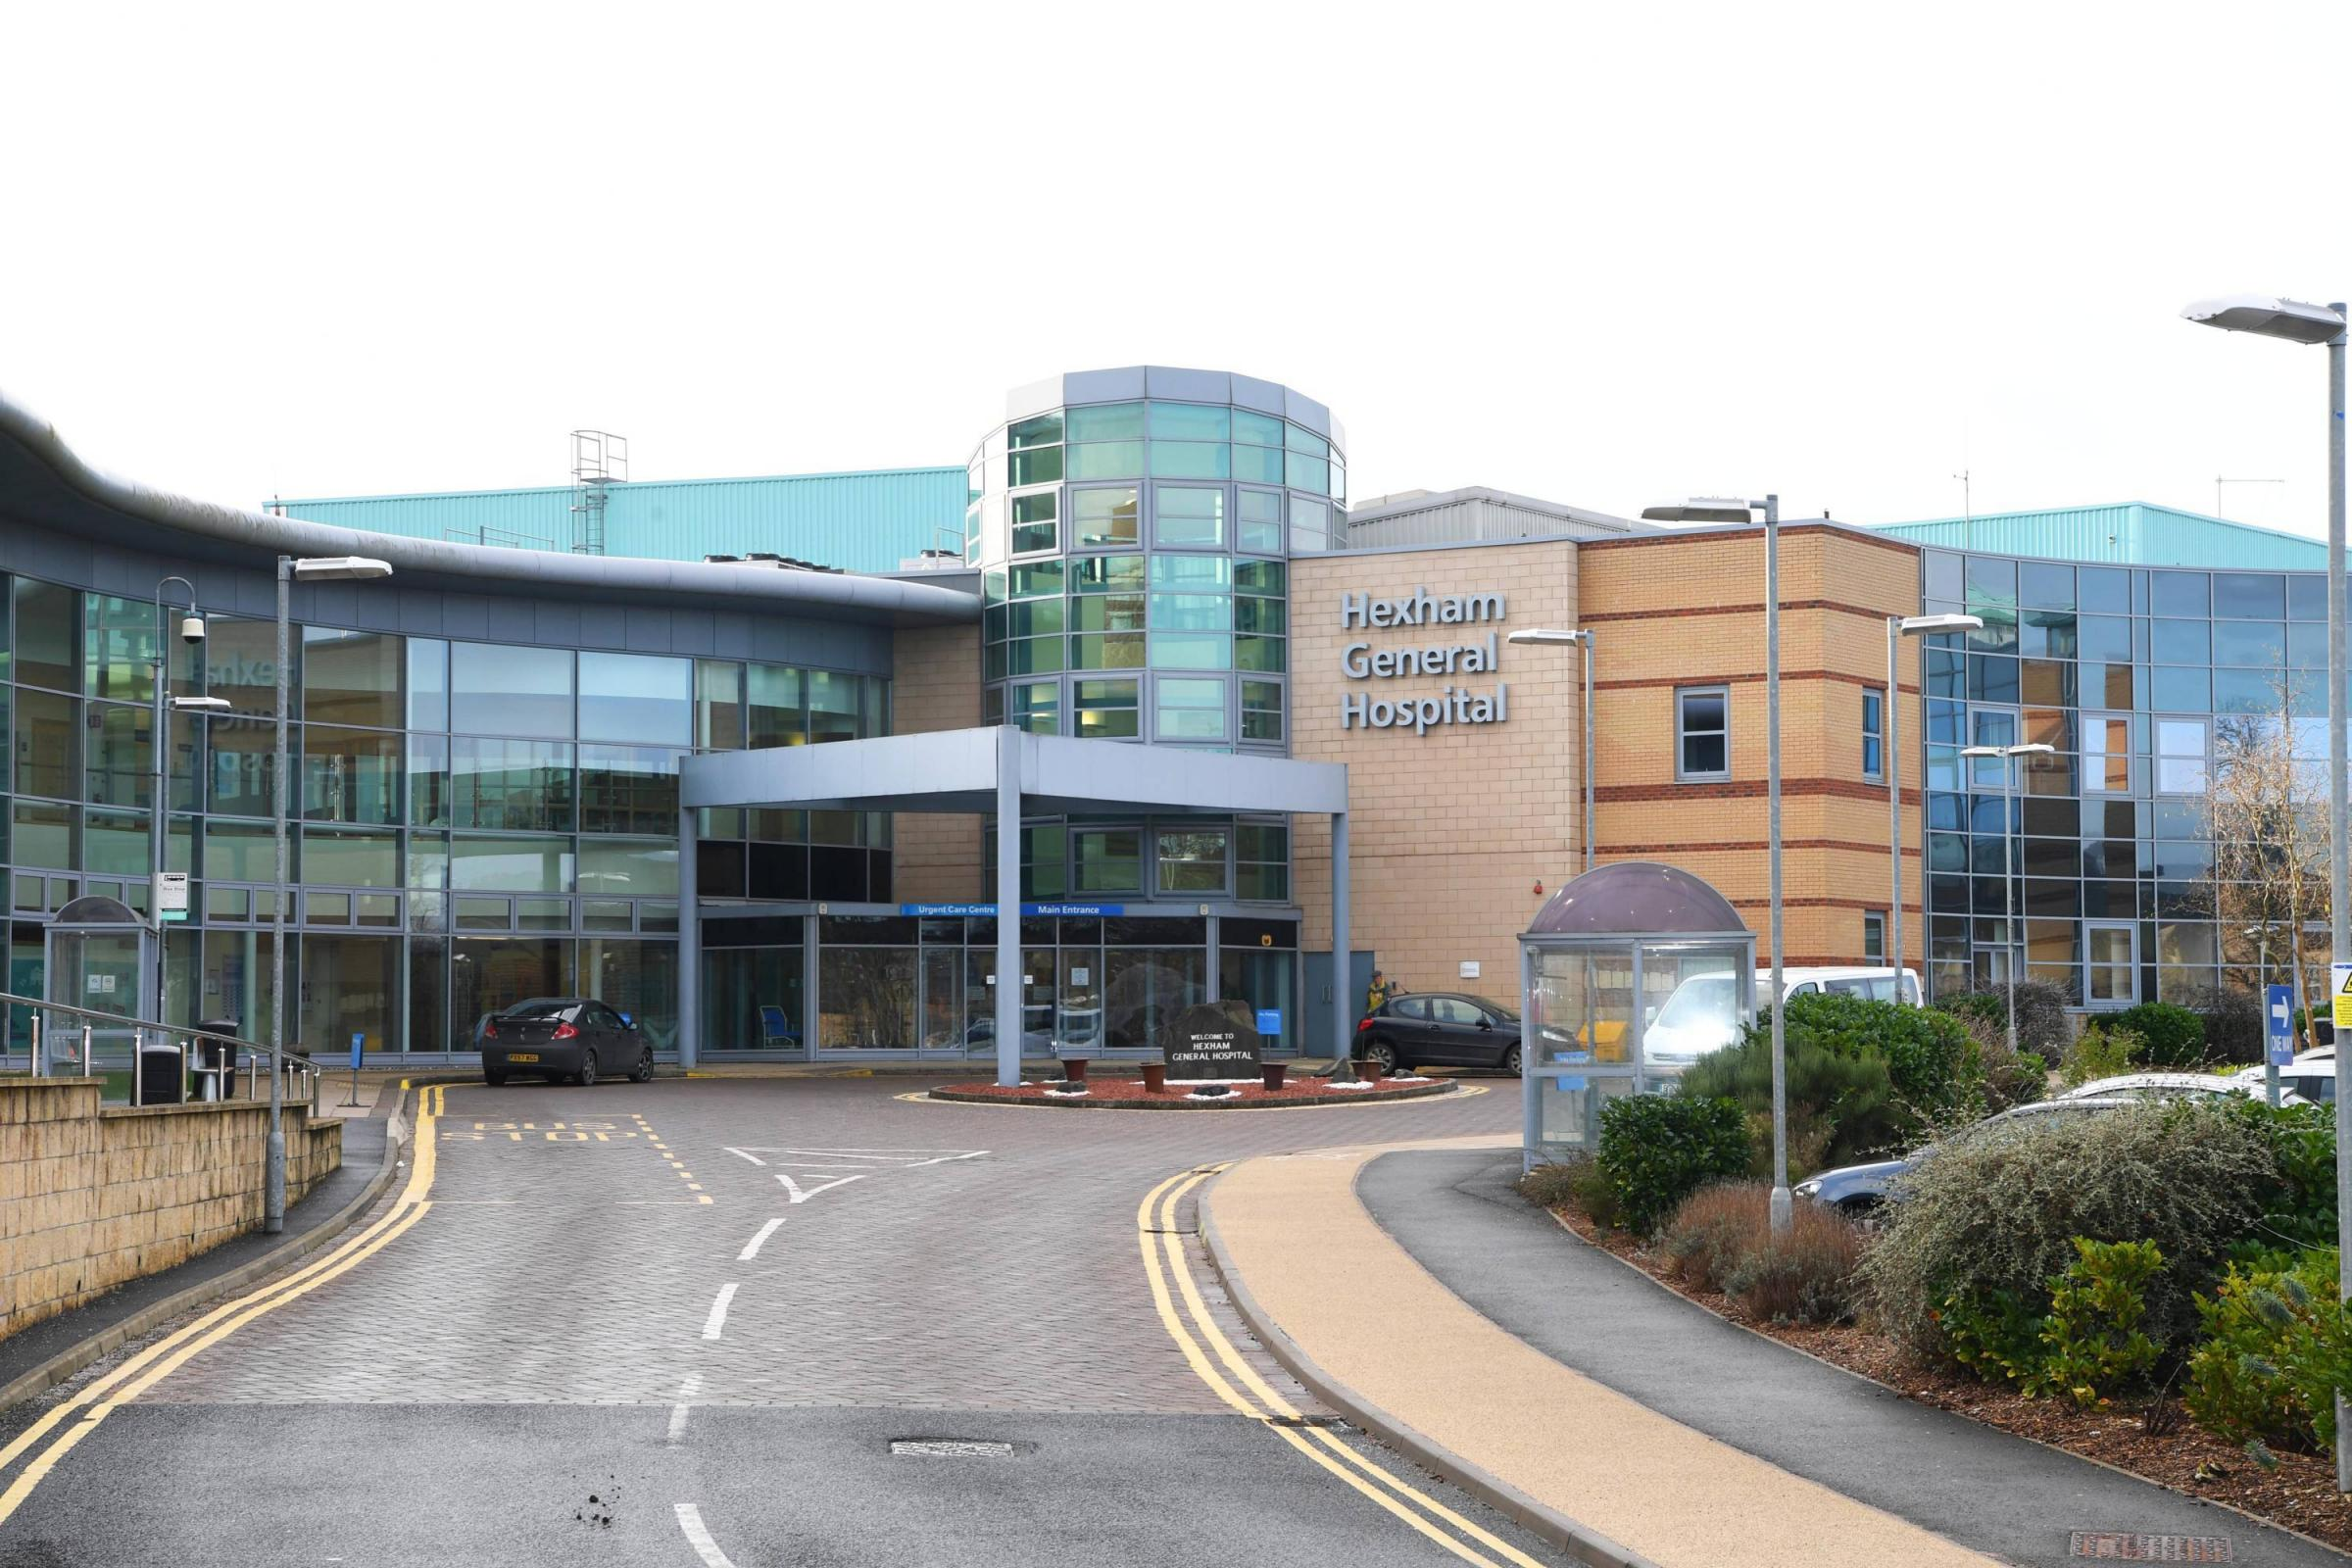 Northumbria Healthcare NHS Foundation Trust have announced visitor restrictions will be put in place at Tynedae's hospitals